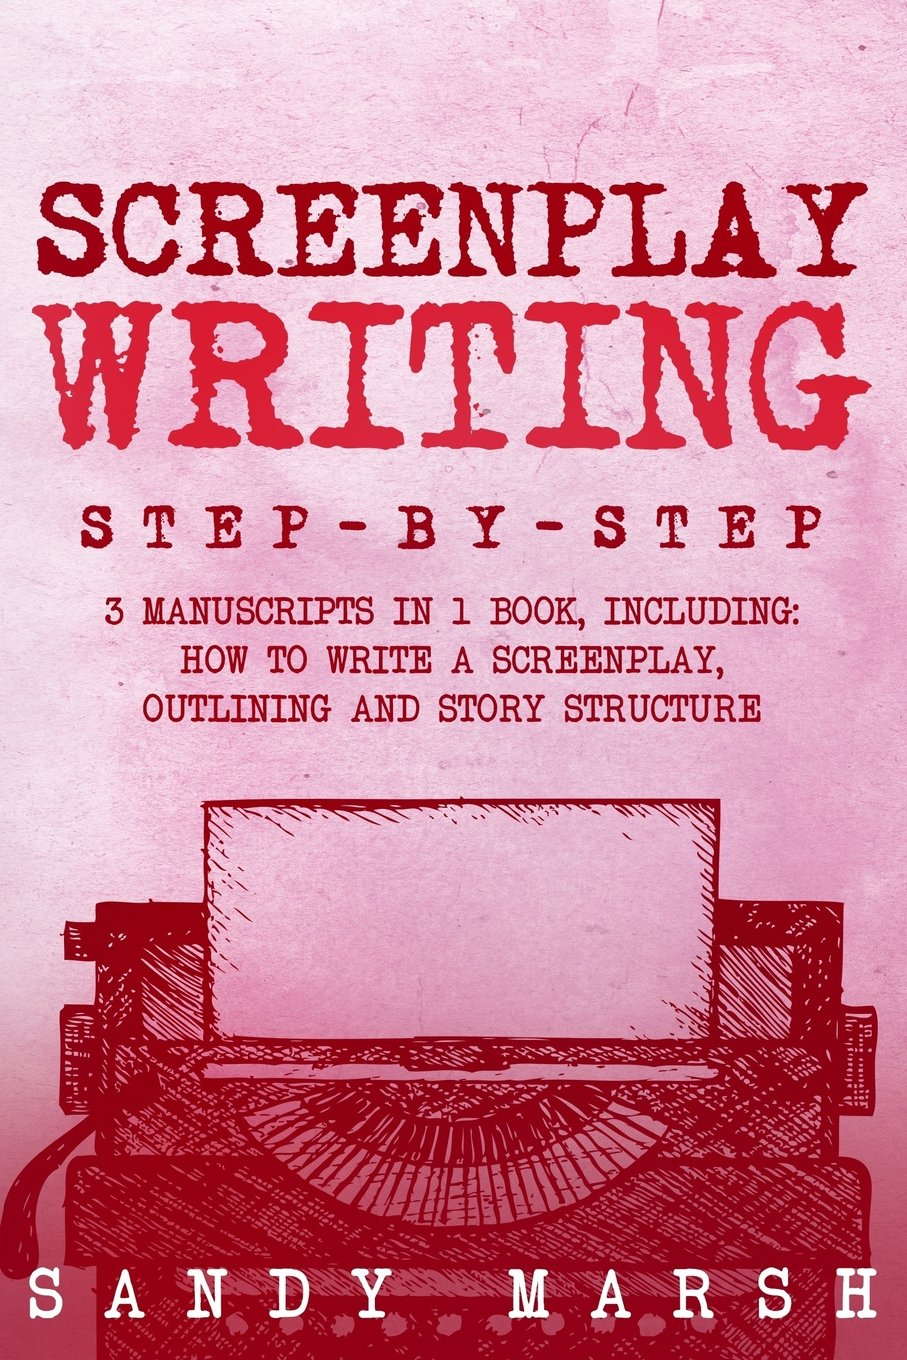 Read Online Screenplay Writing: Step-by-Step  3 Manuscripts in 1 Book  Essential Scriptwriting, Screenplay Outlining and Screenplay Story Structure Tricks Any Writer Can Learn (Volume 22) PDF